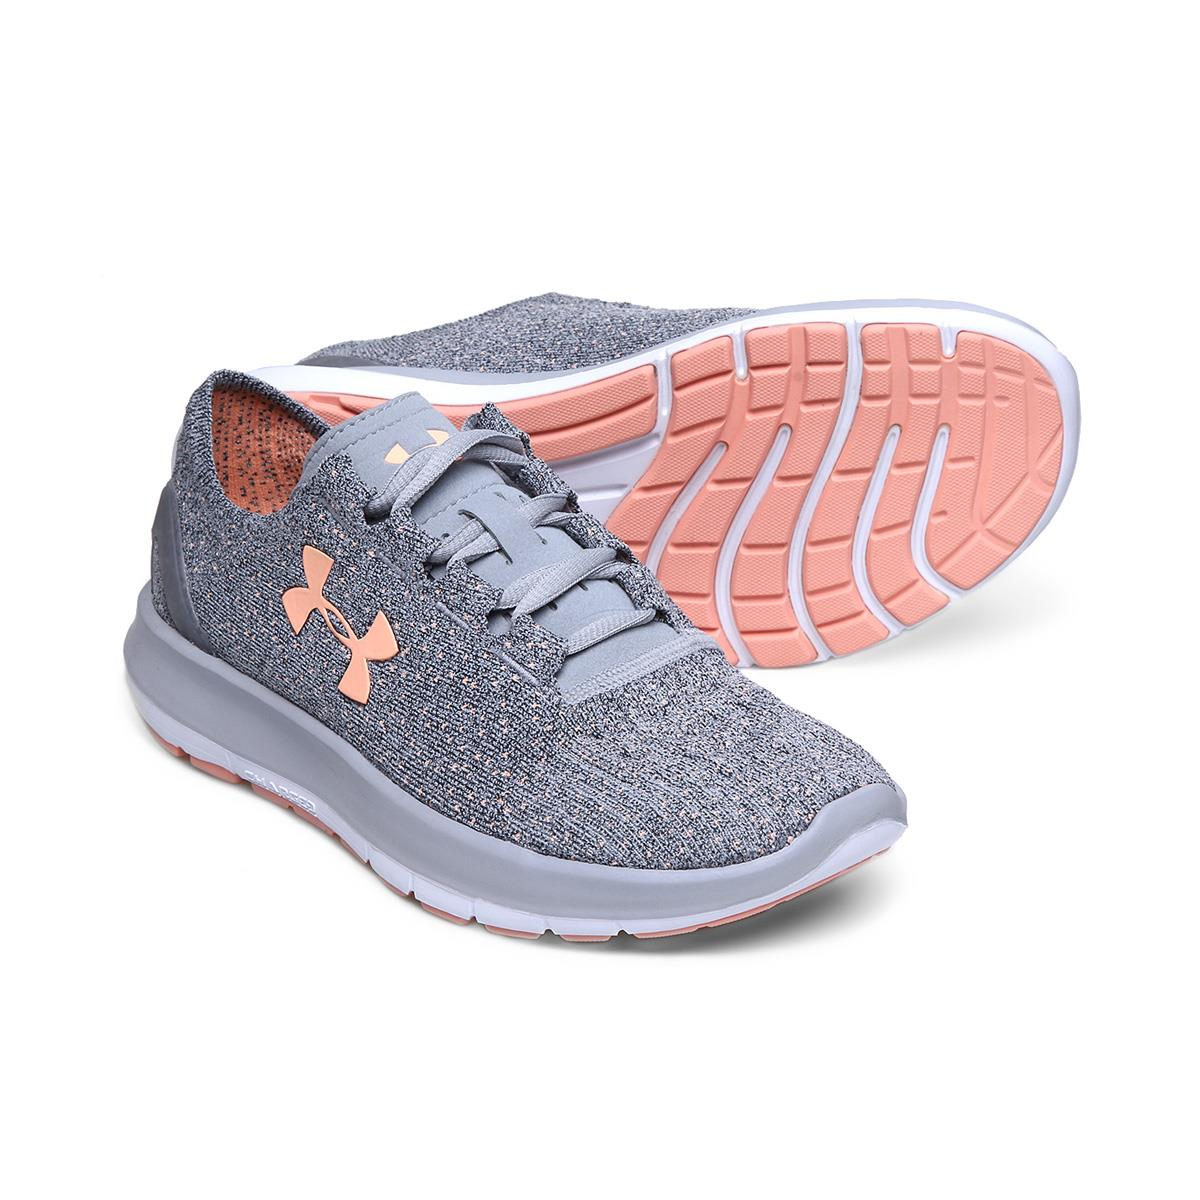 b7fcd4dc92d Tênis Under Armour Speedform Slingride TRI Feminino